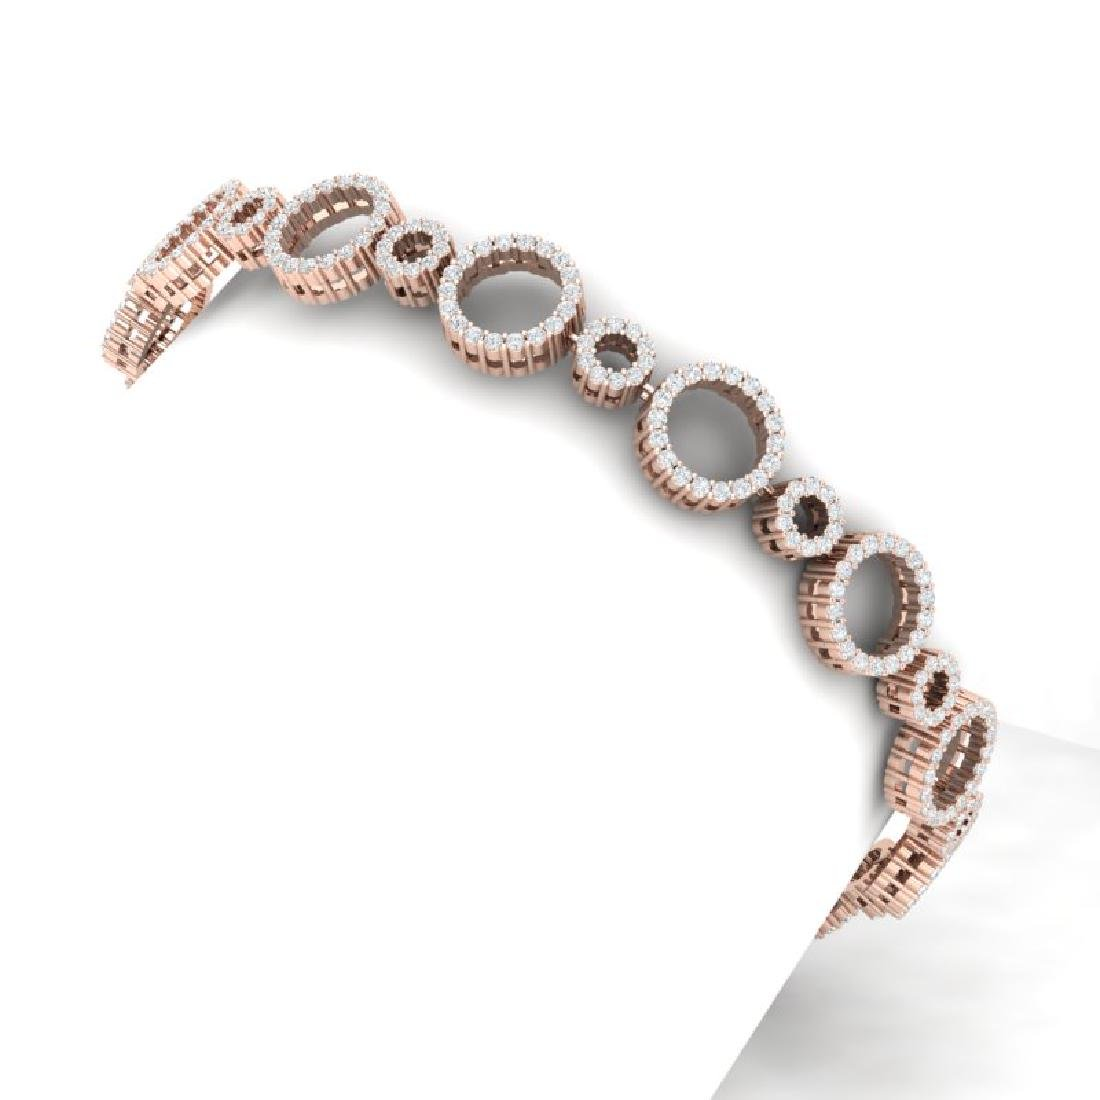 4 CTW Certified SI/I Diamond Halo Bracelet 18K Rose